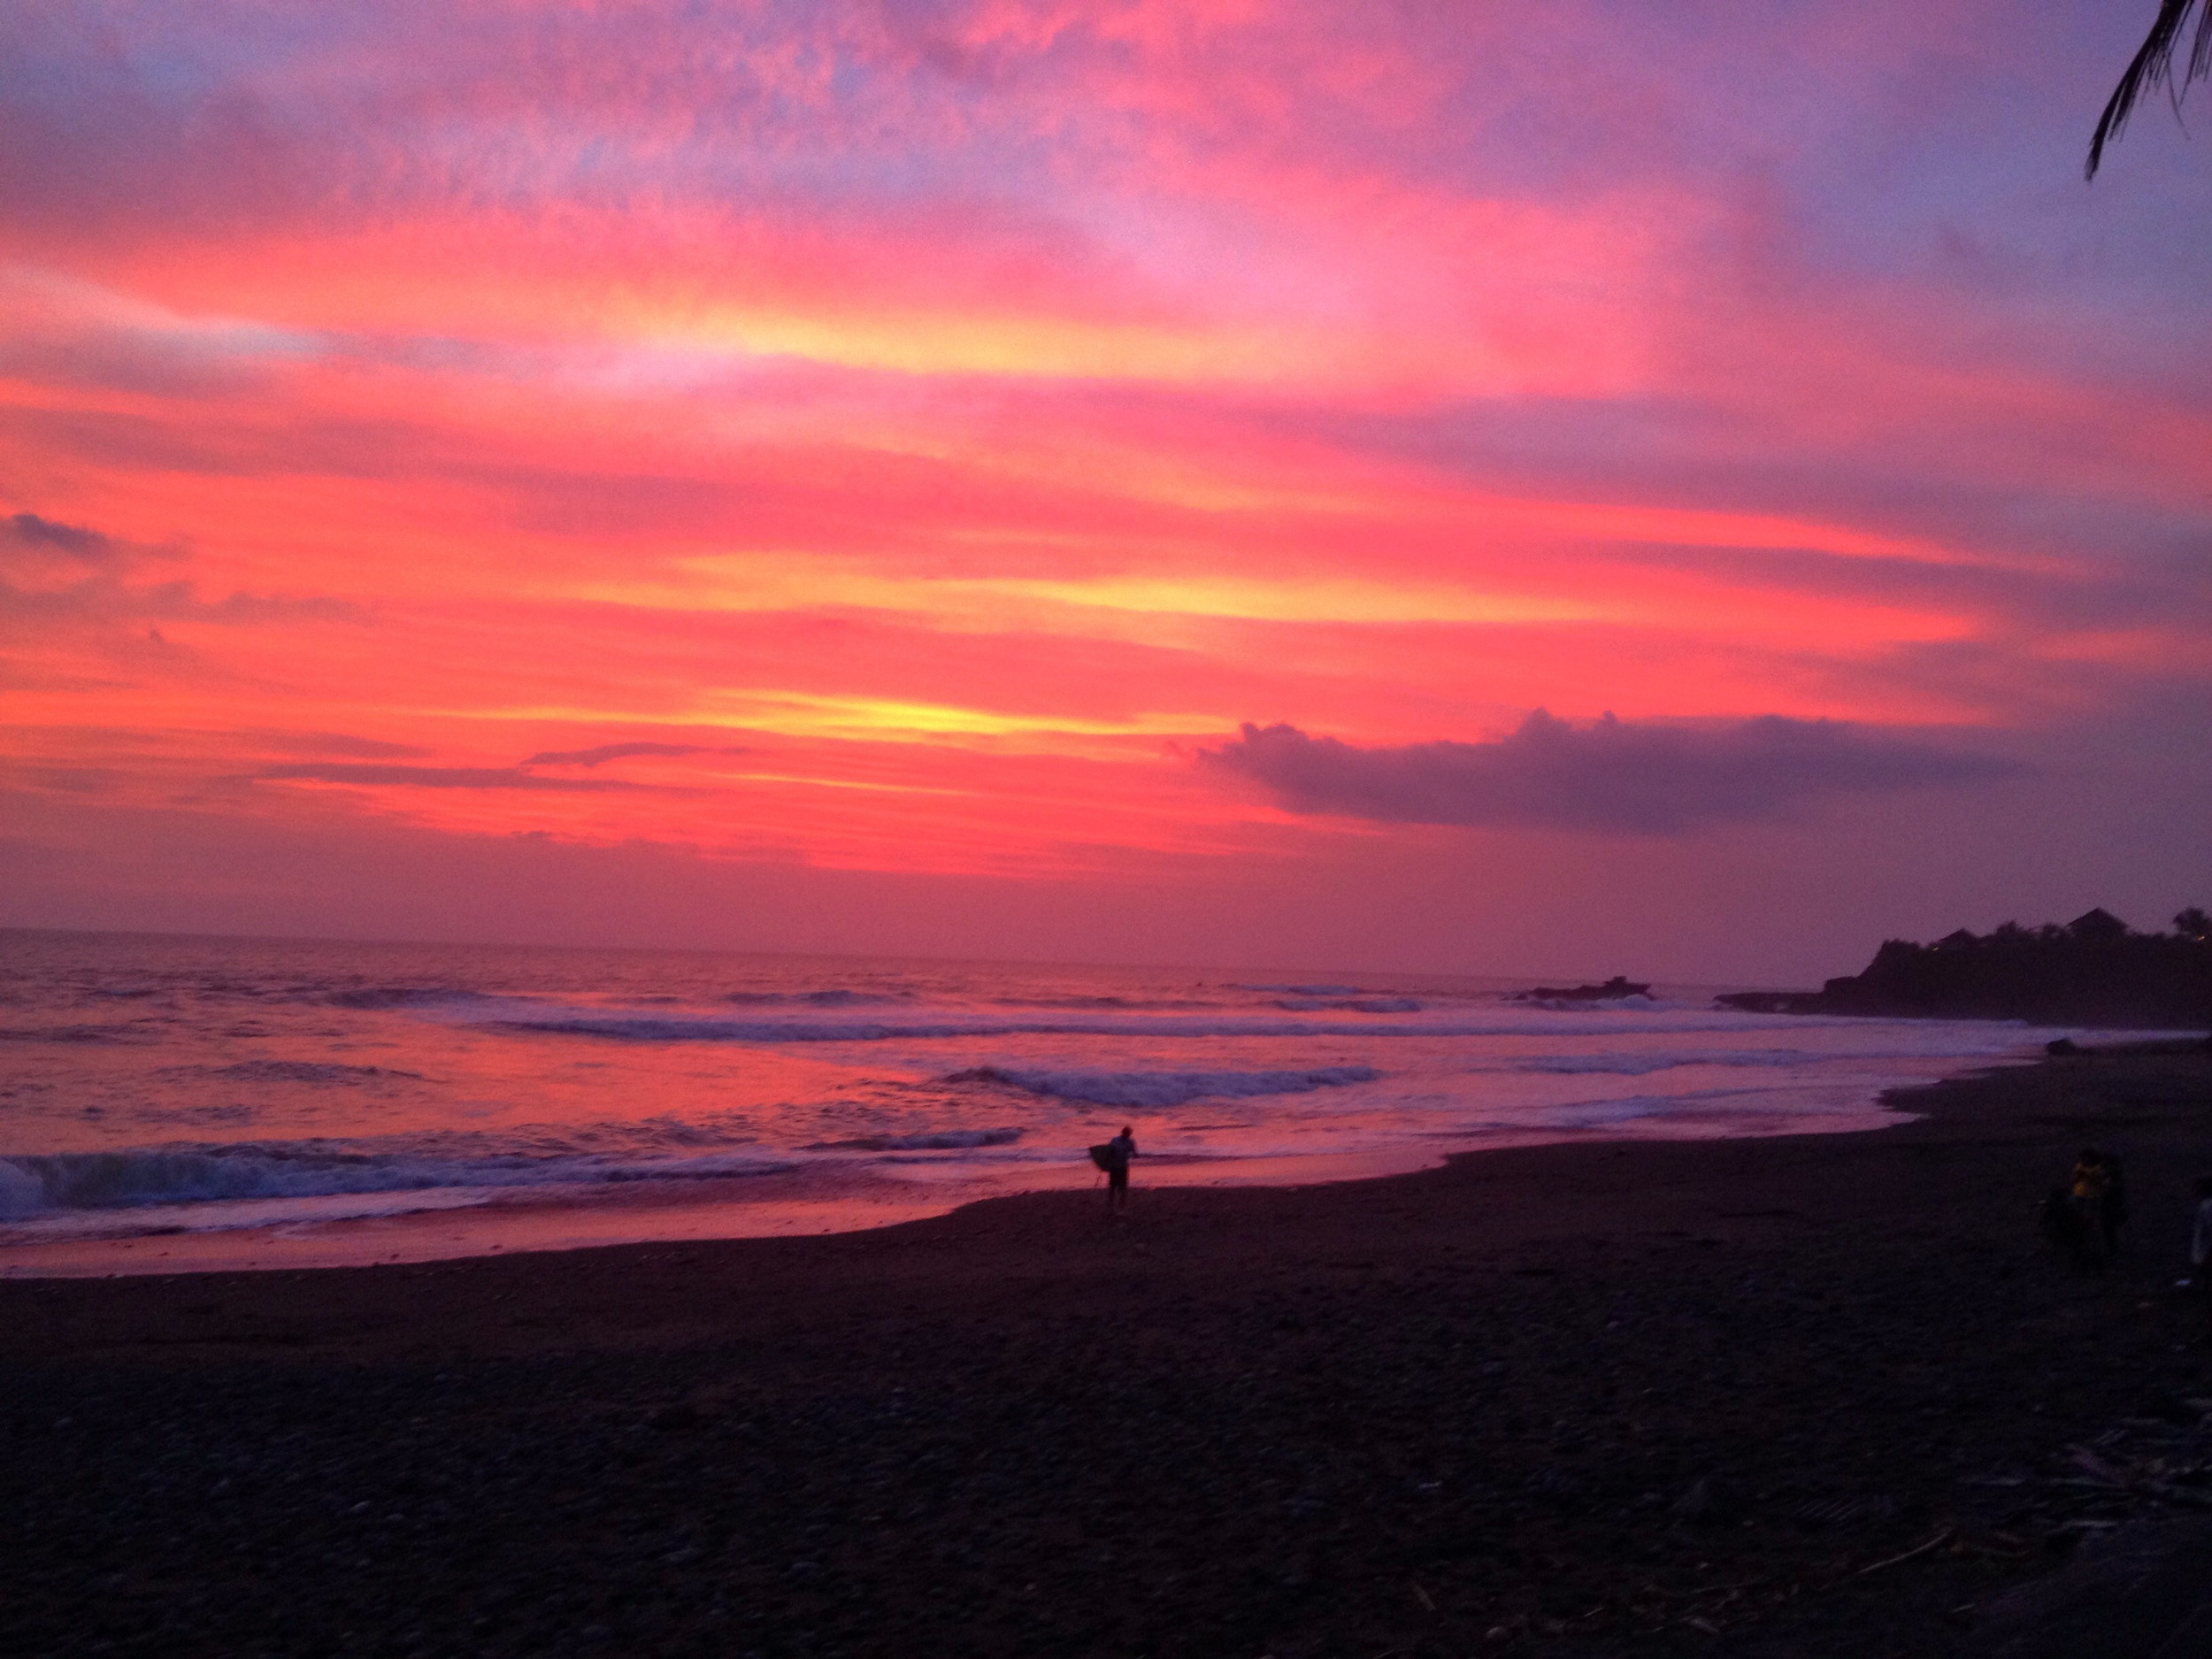 Our first epic sunset in Bali